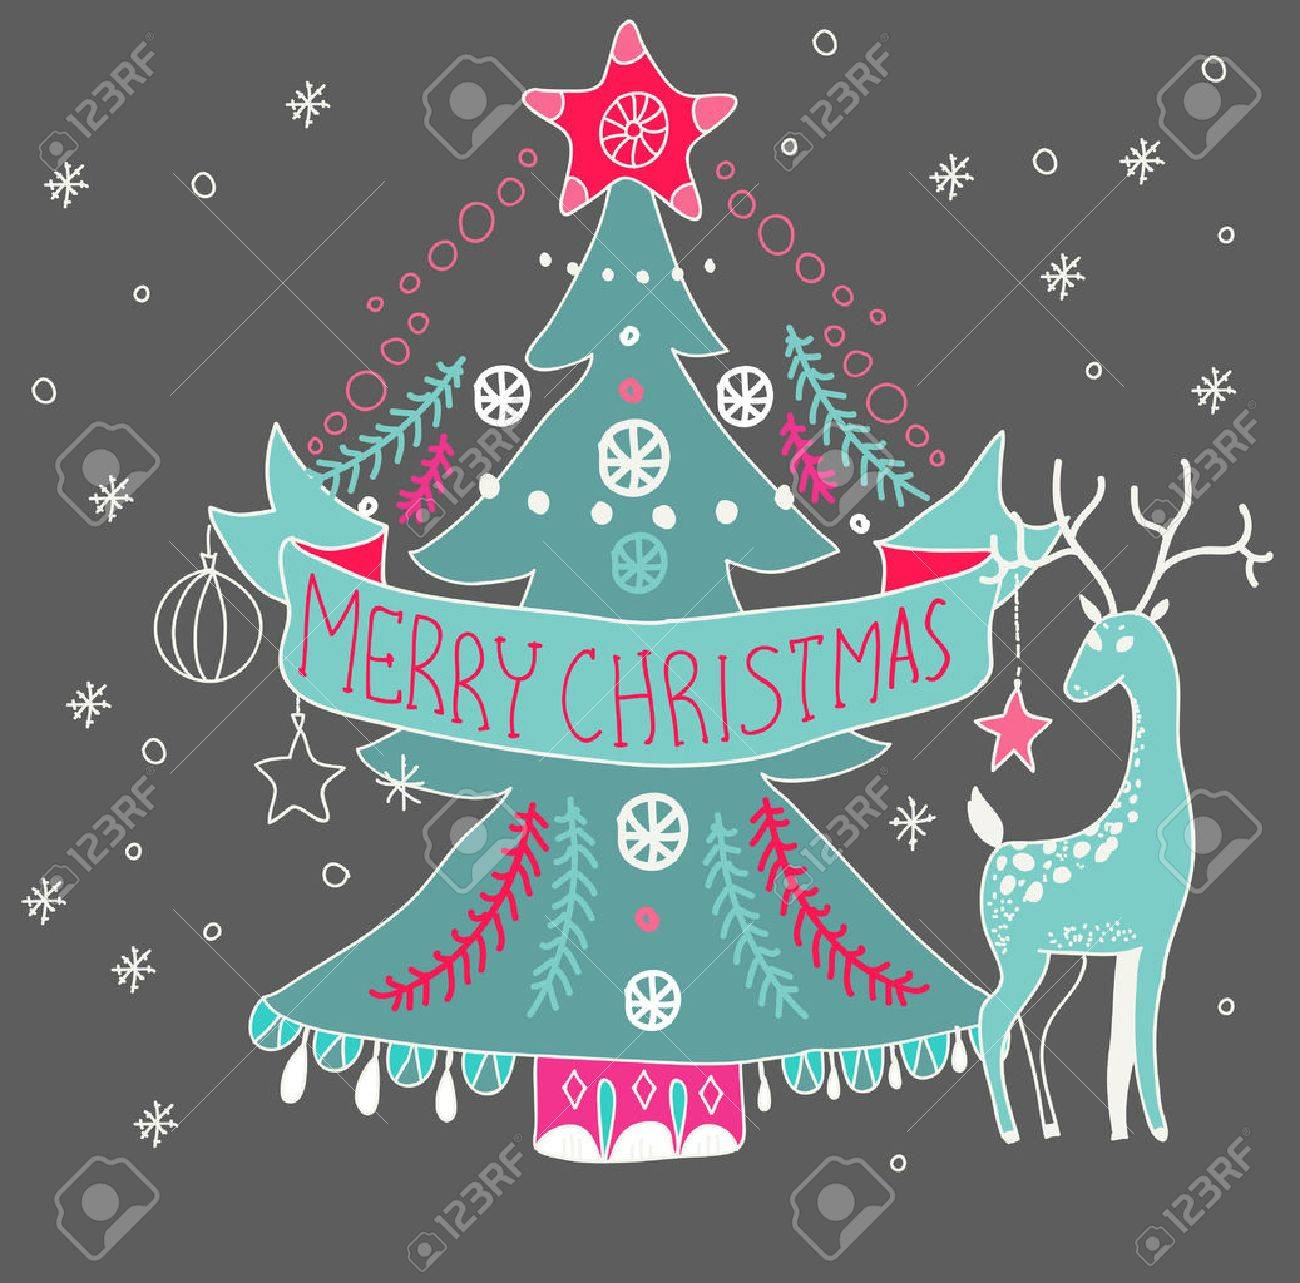 Christmas Background With Cute Decorations And Christmas Tree